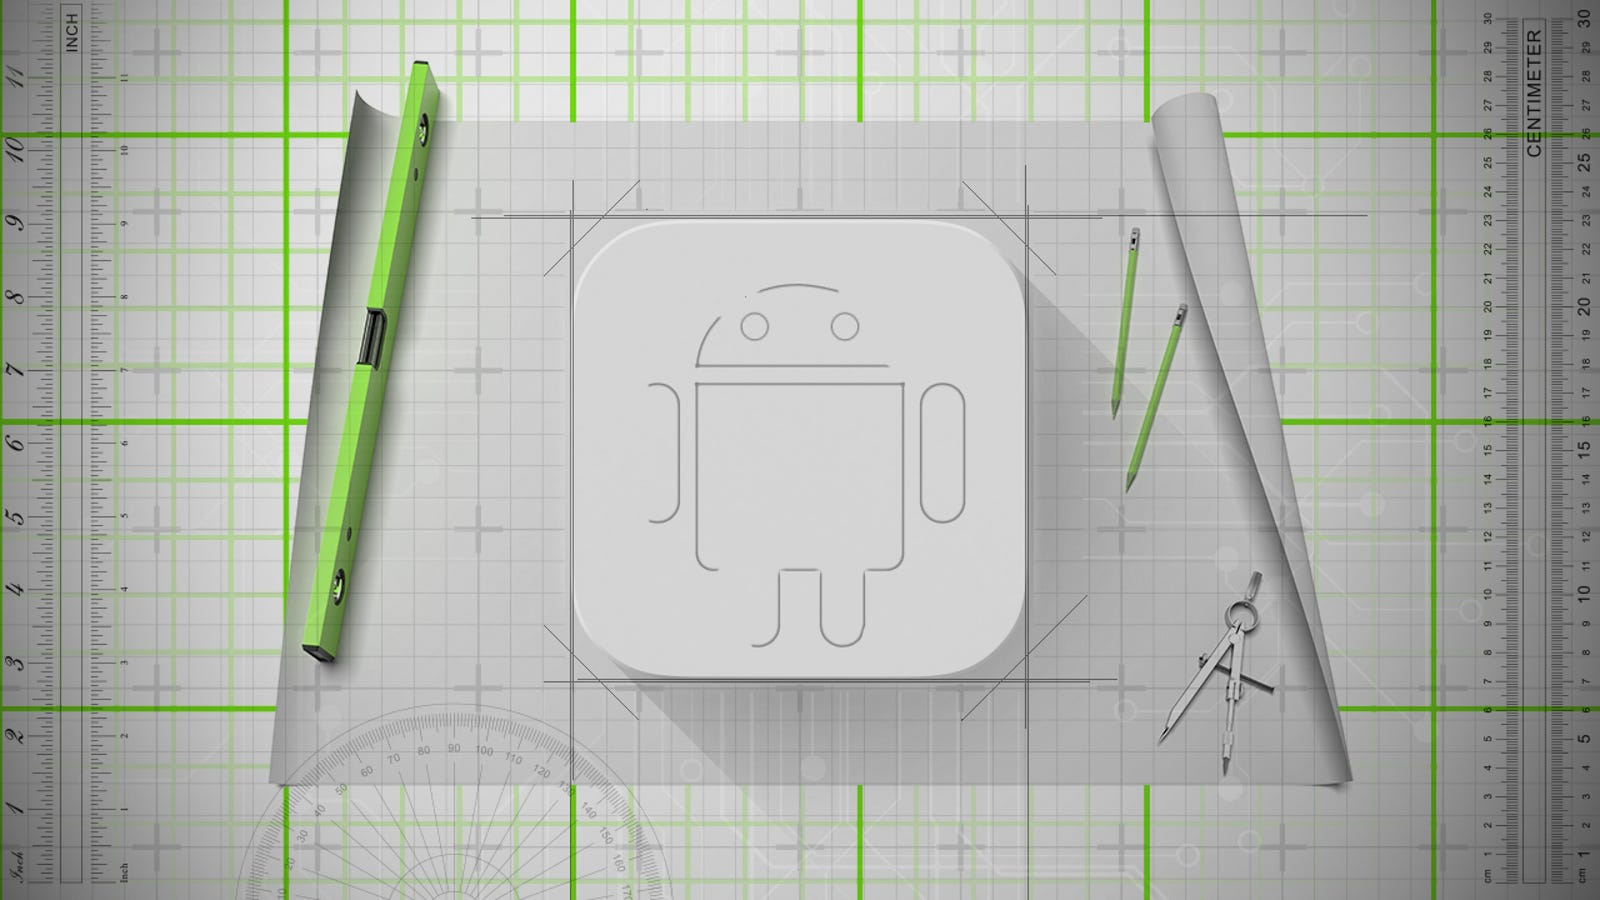 I Want to Write Android Apps  Where Do I Start?